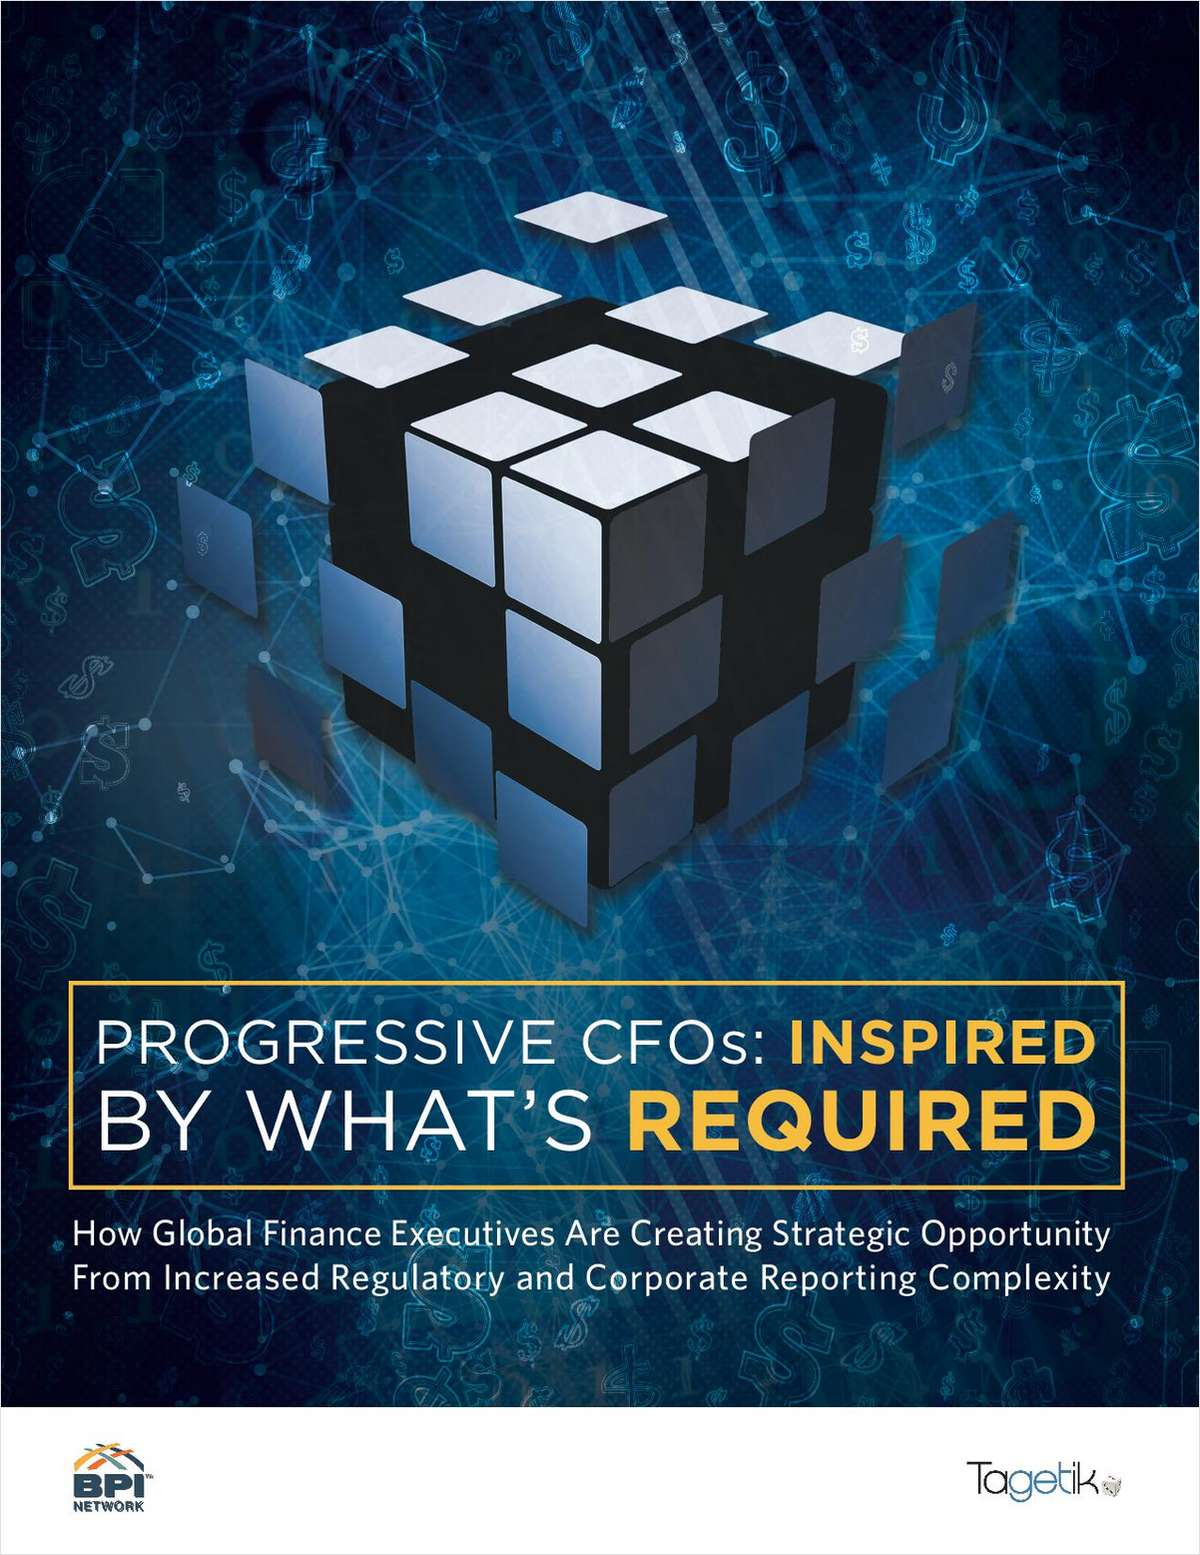 Progressive CFOs: Inspired by What's Required?